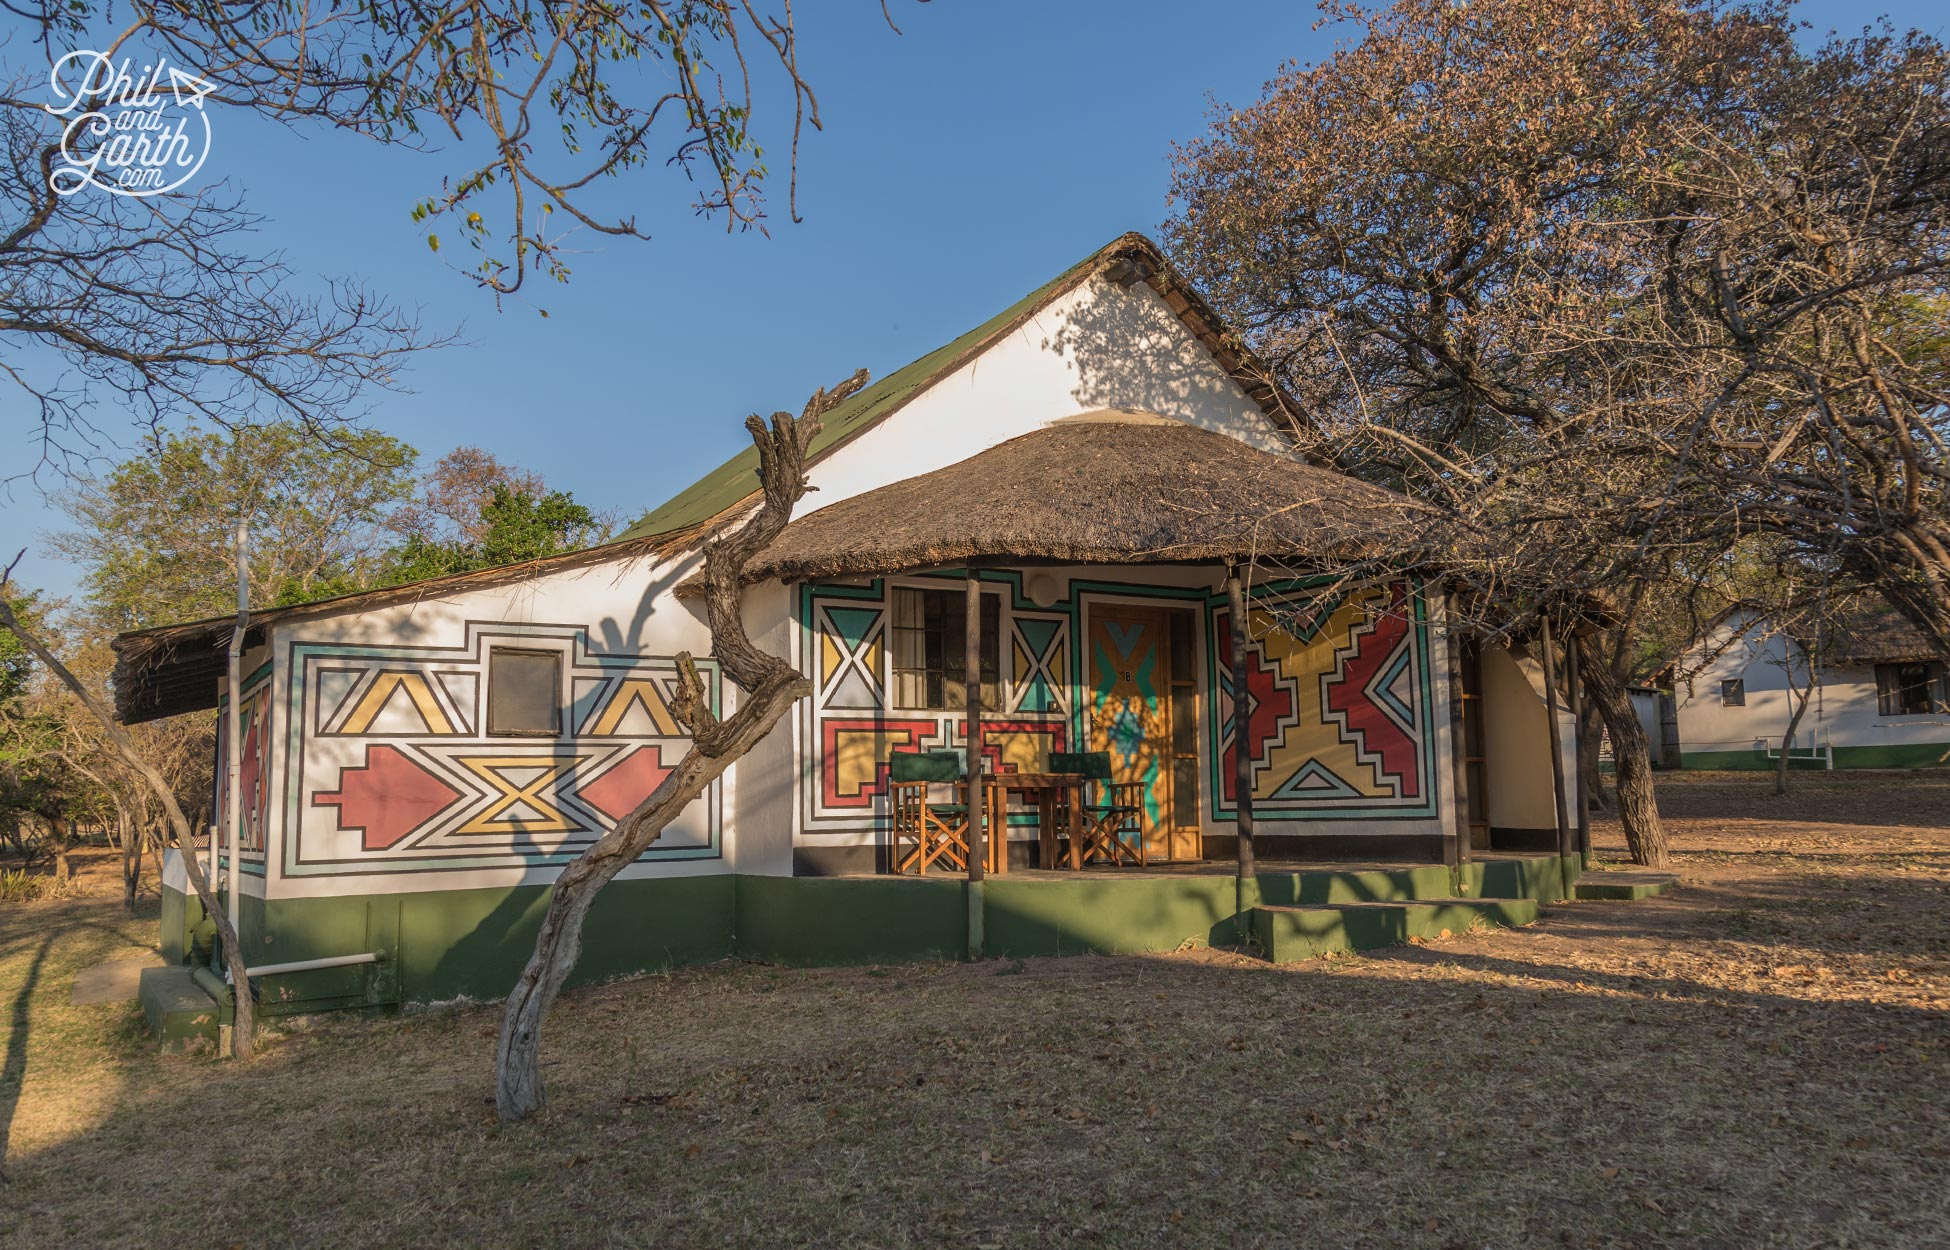 Our lodge accommodation at Timbavati Safari Lodge